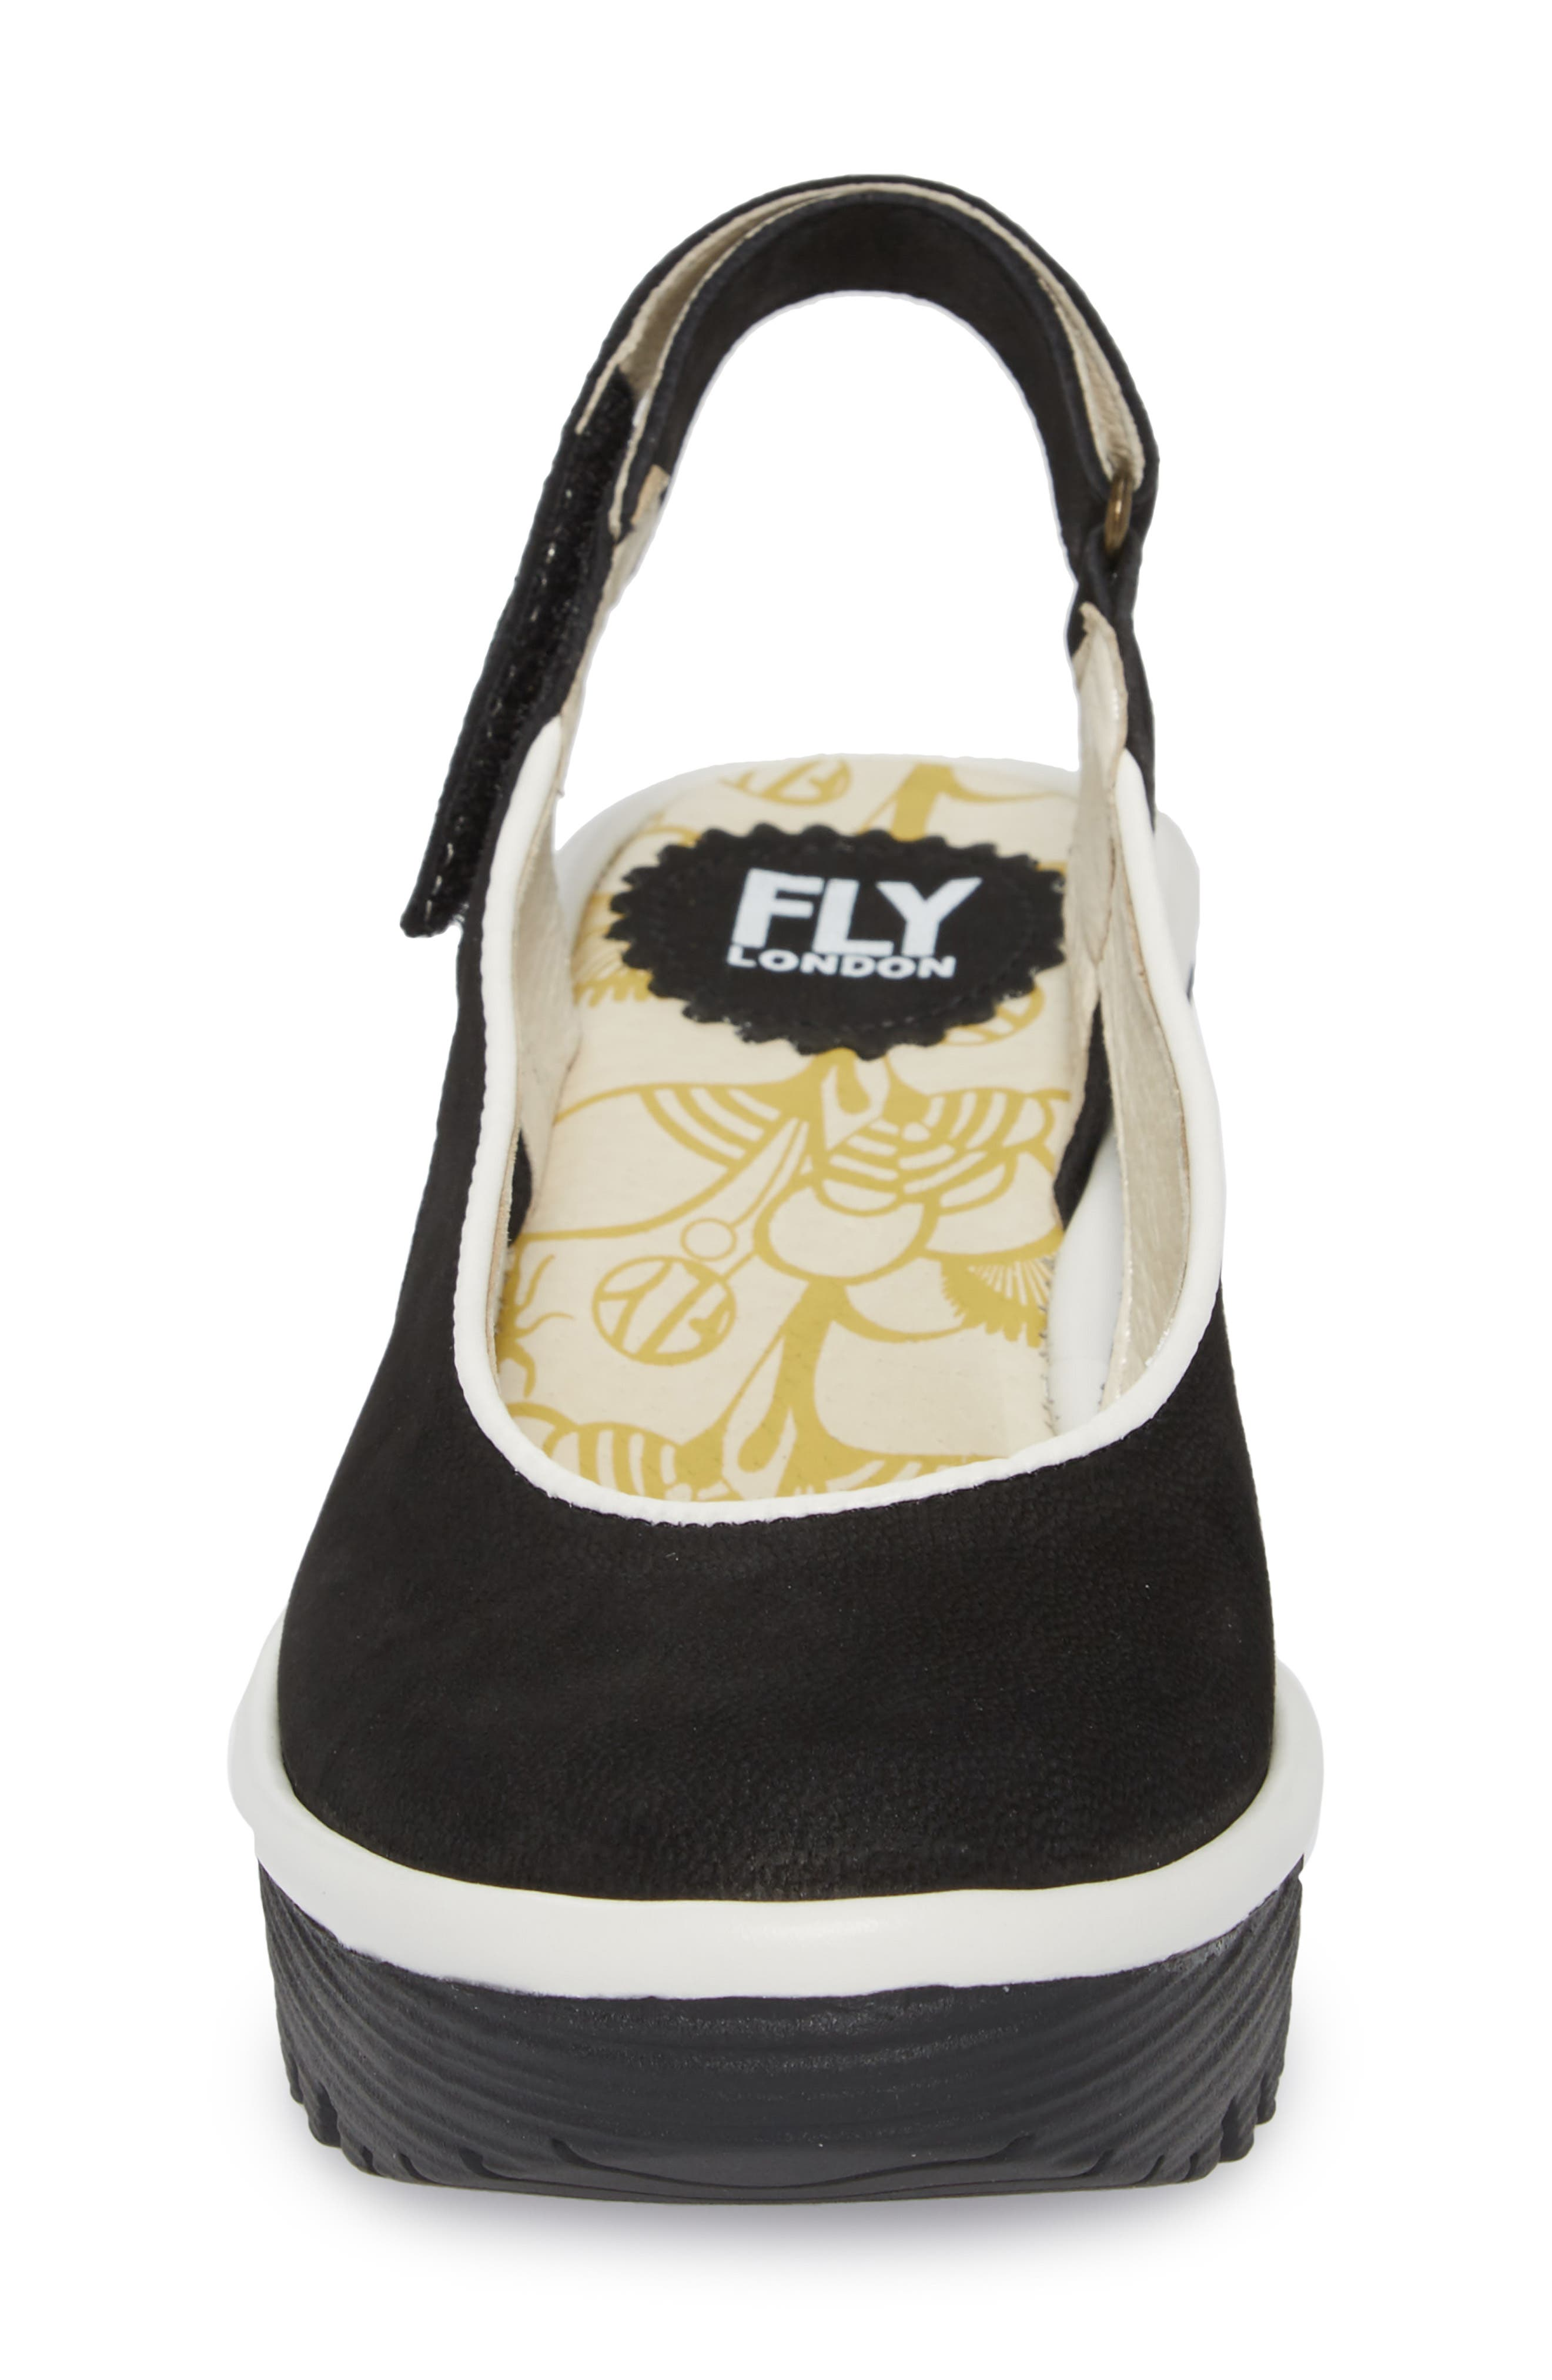 Yipi Wedge Sandal,                             Alternate thumbnail 4, color,                             BLACK/ OFF WHITE MIX LEATHER